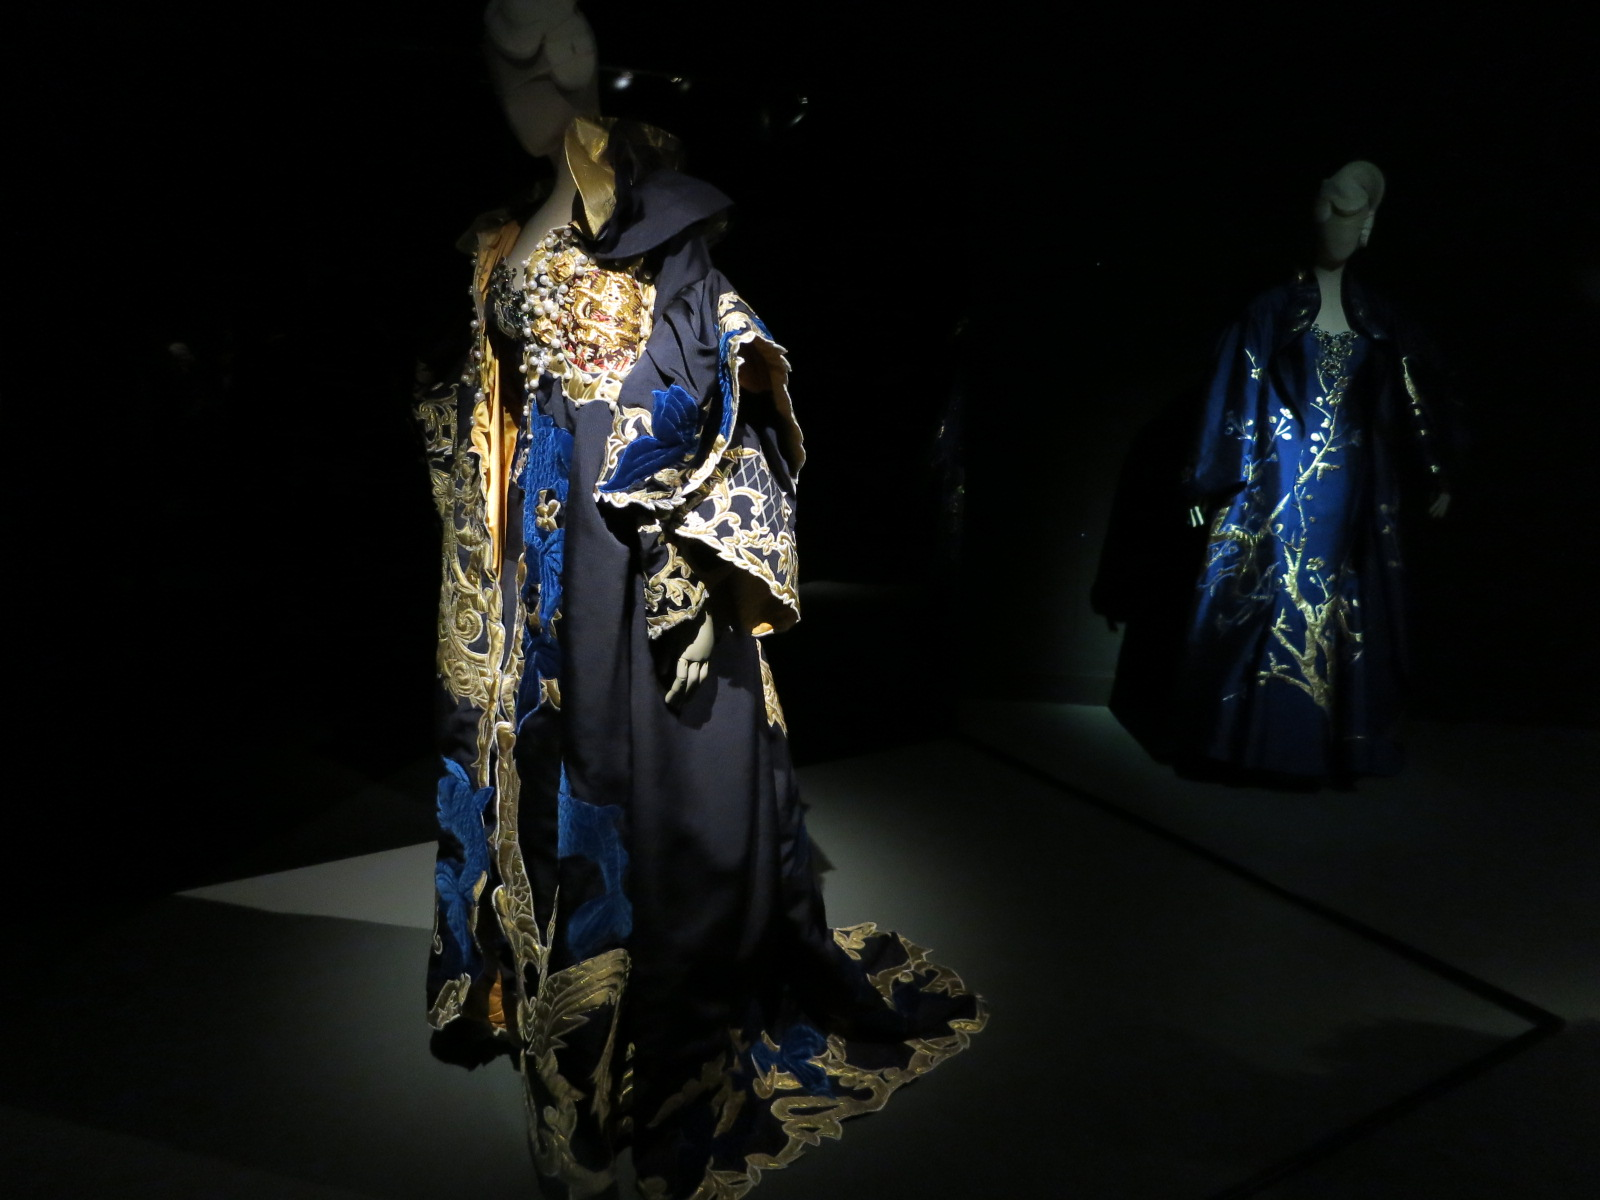 'Korea Now' exhibition at the Musee des Arts Decoratifs. Closes on the 3rd January 2016. These garments were designed by Andre Kim